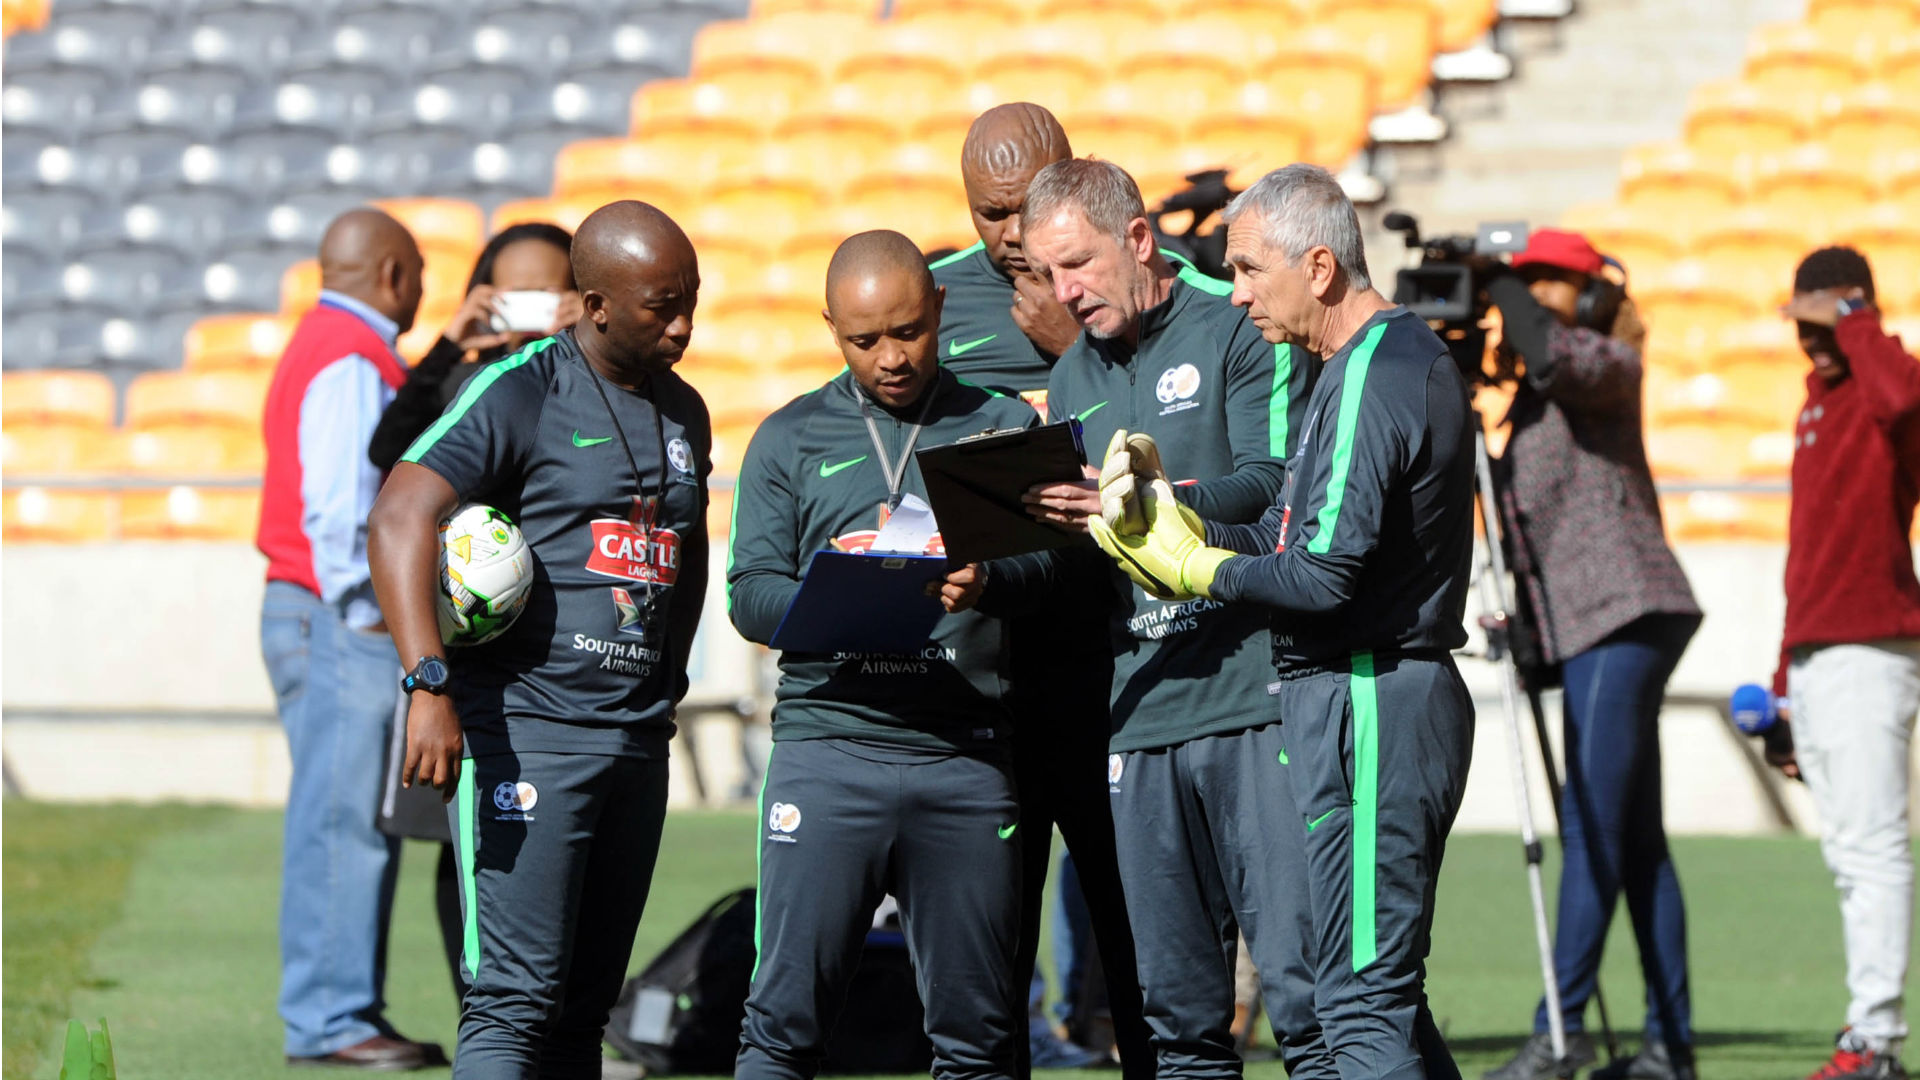 South Africa will not appeal against World Cup replay